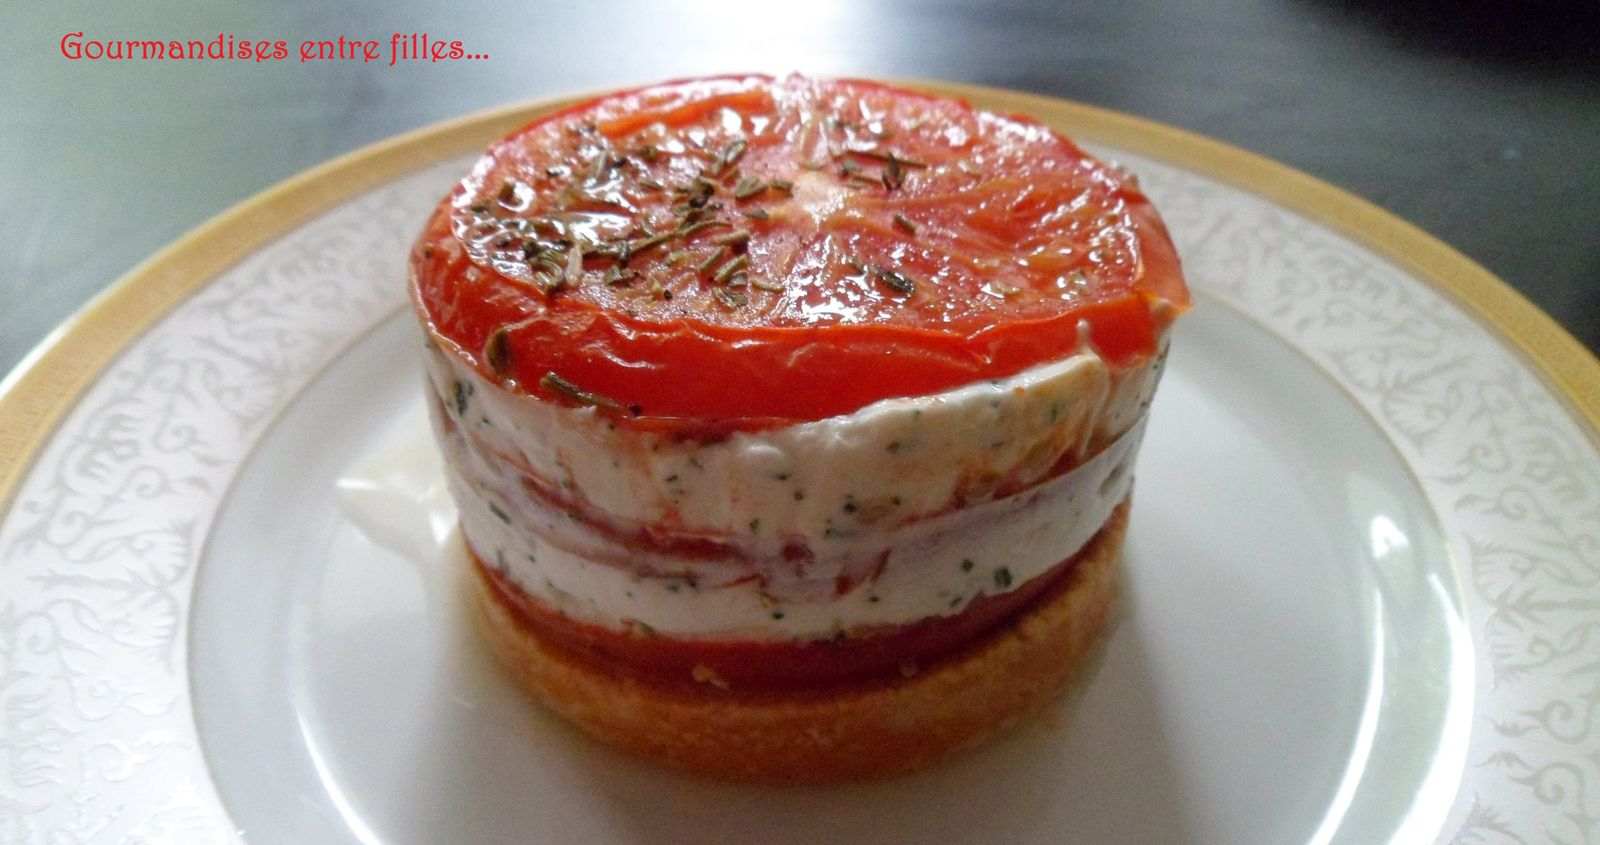 Petit cheesecake ch vre tomate gourmandises entre filles for Petite entree sympa